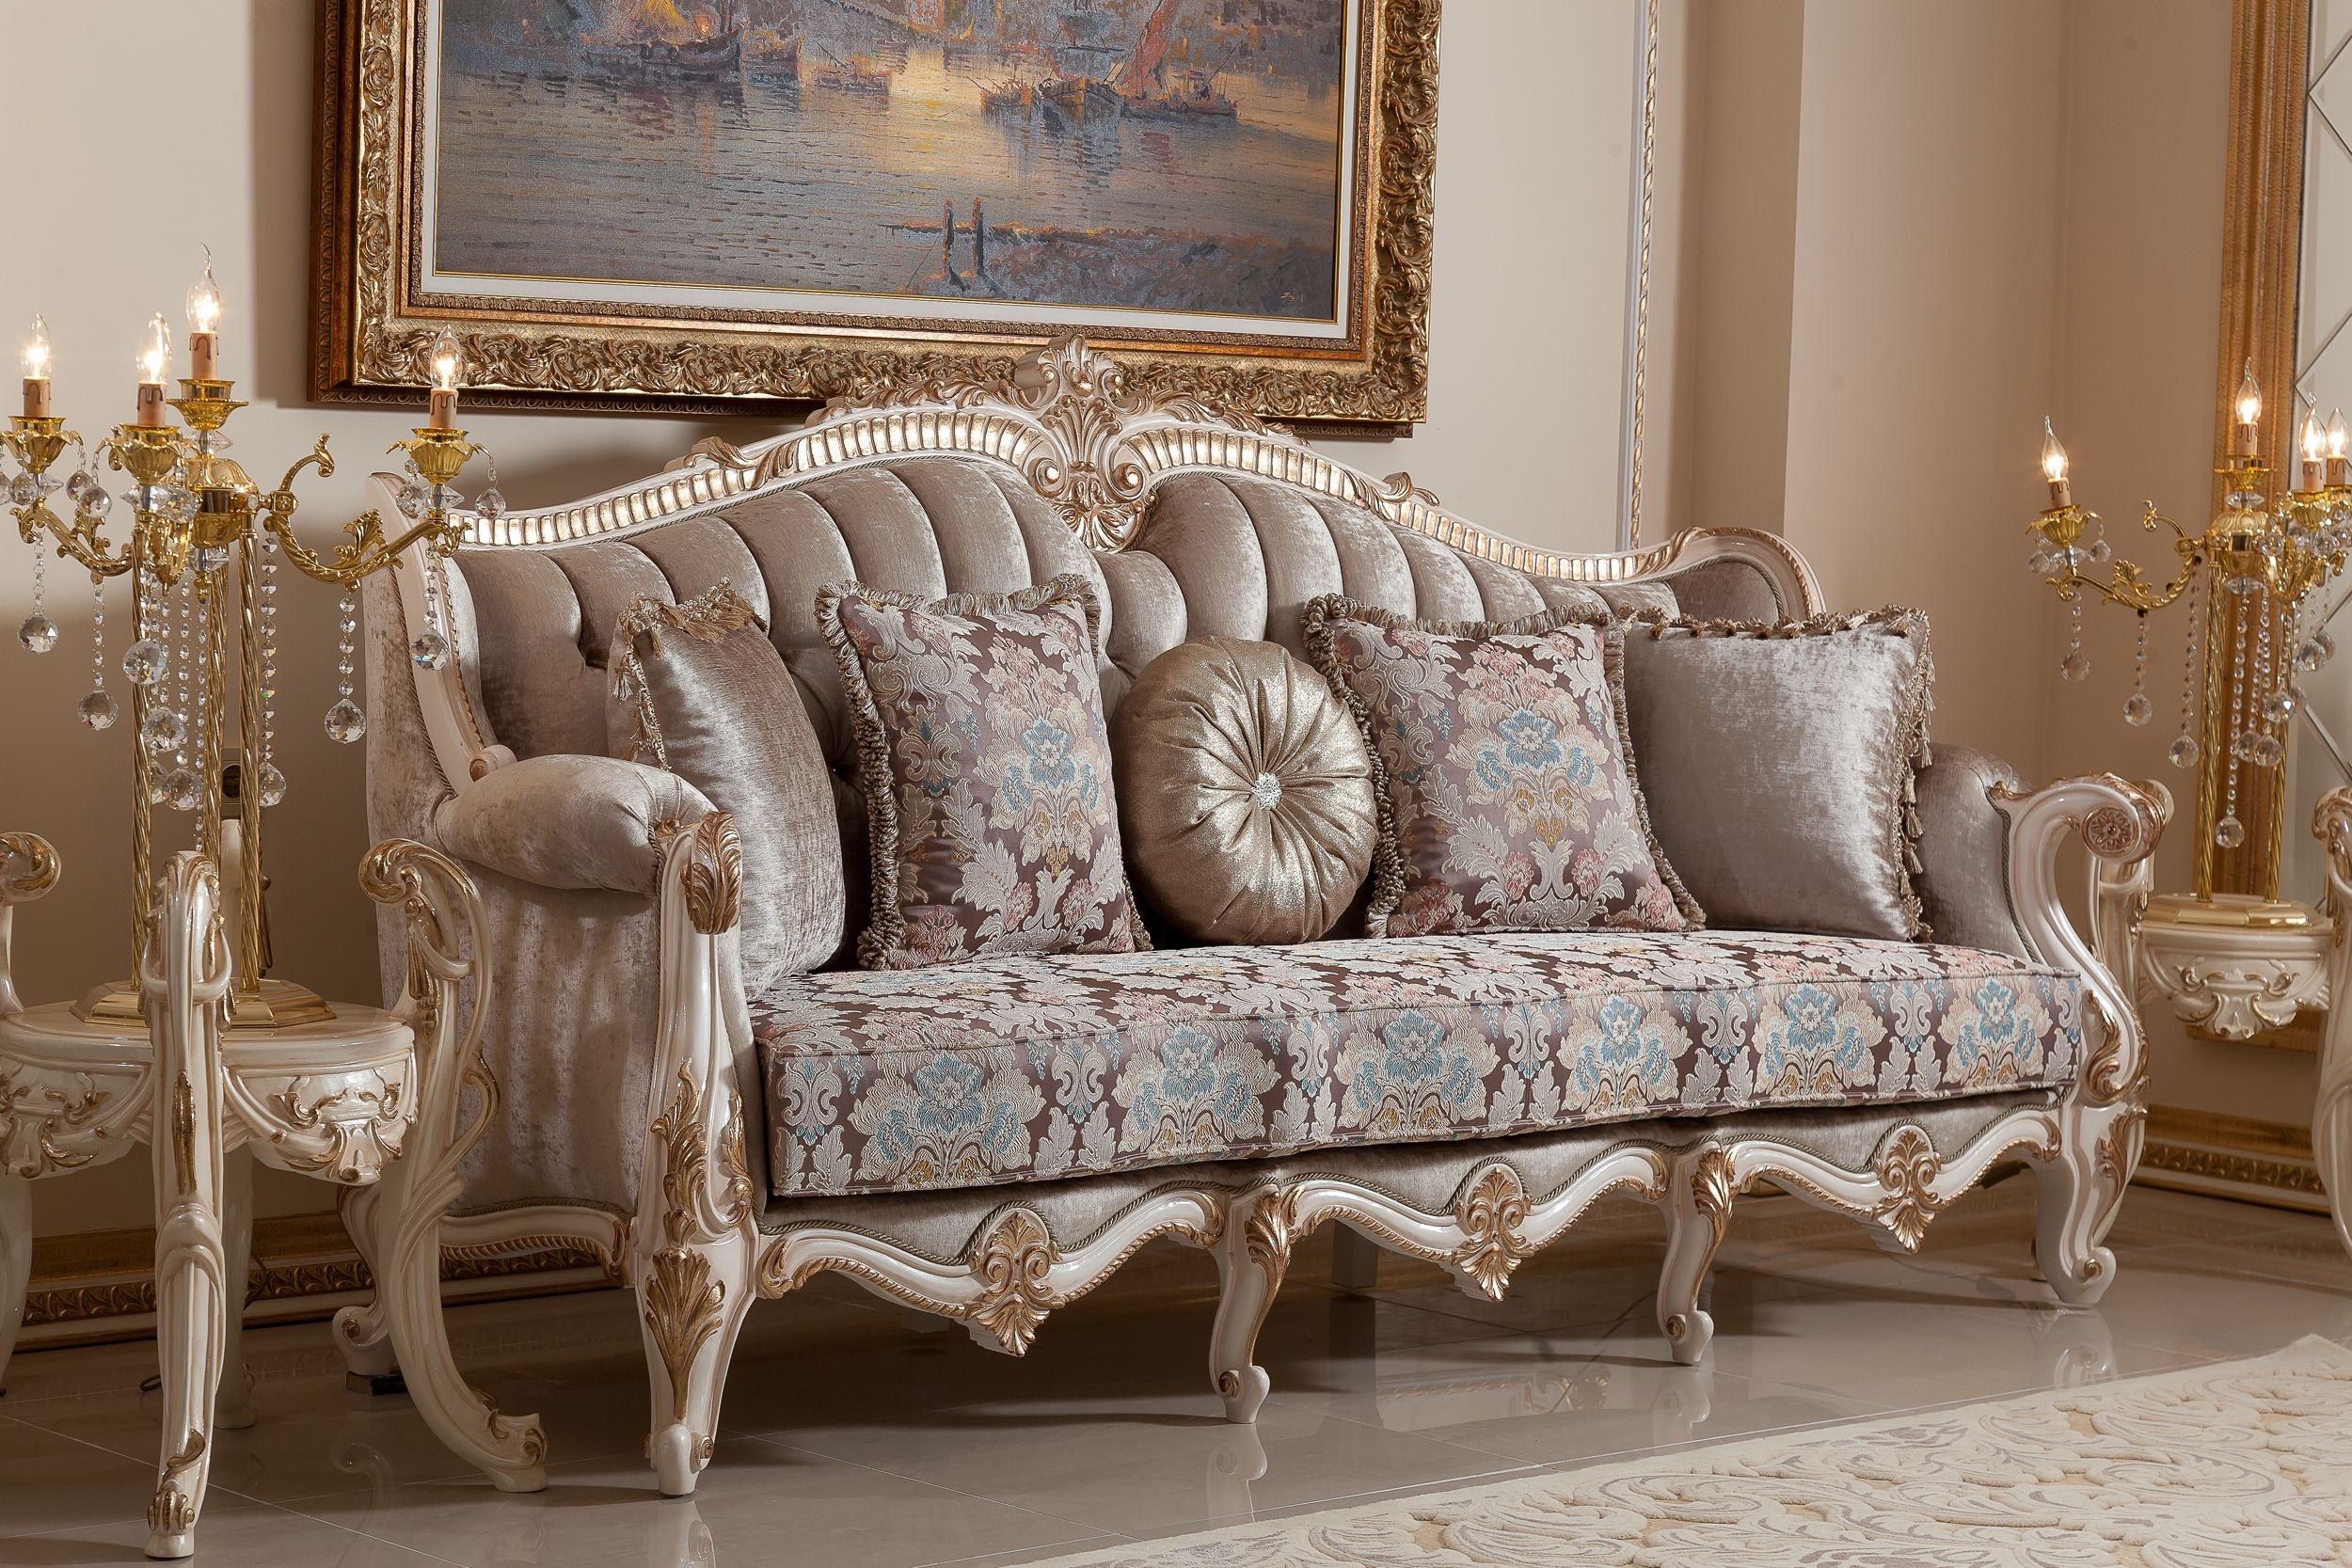 Merveilleux INCI SOFA SET Handmade Turkish Furniture. You Can Give Order This Sofa Set  (3+3+1+1+ Coffee Table). Total Price Is 7800 Dollar. We Can Shipping  Worldwide.